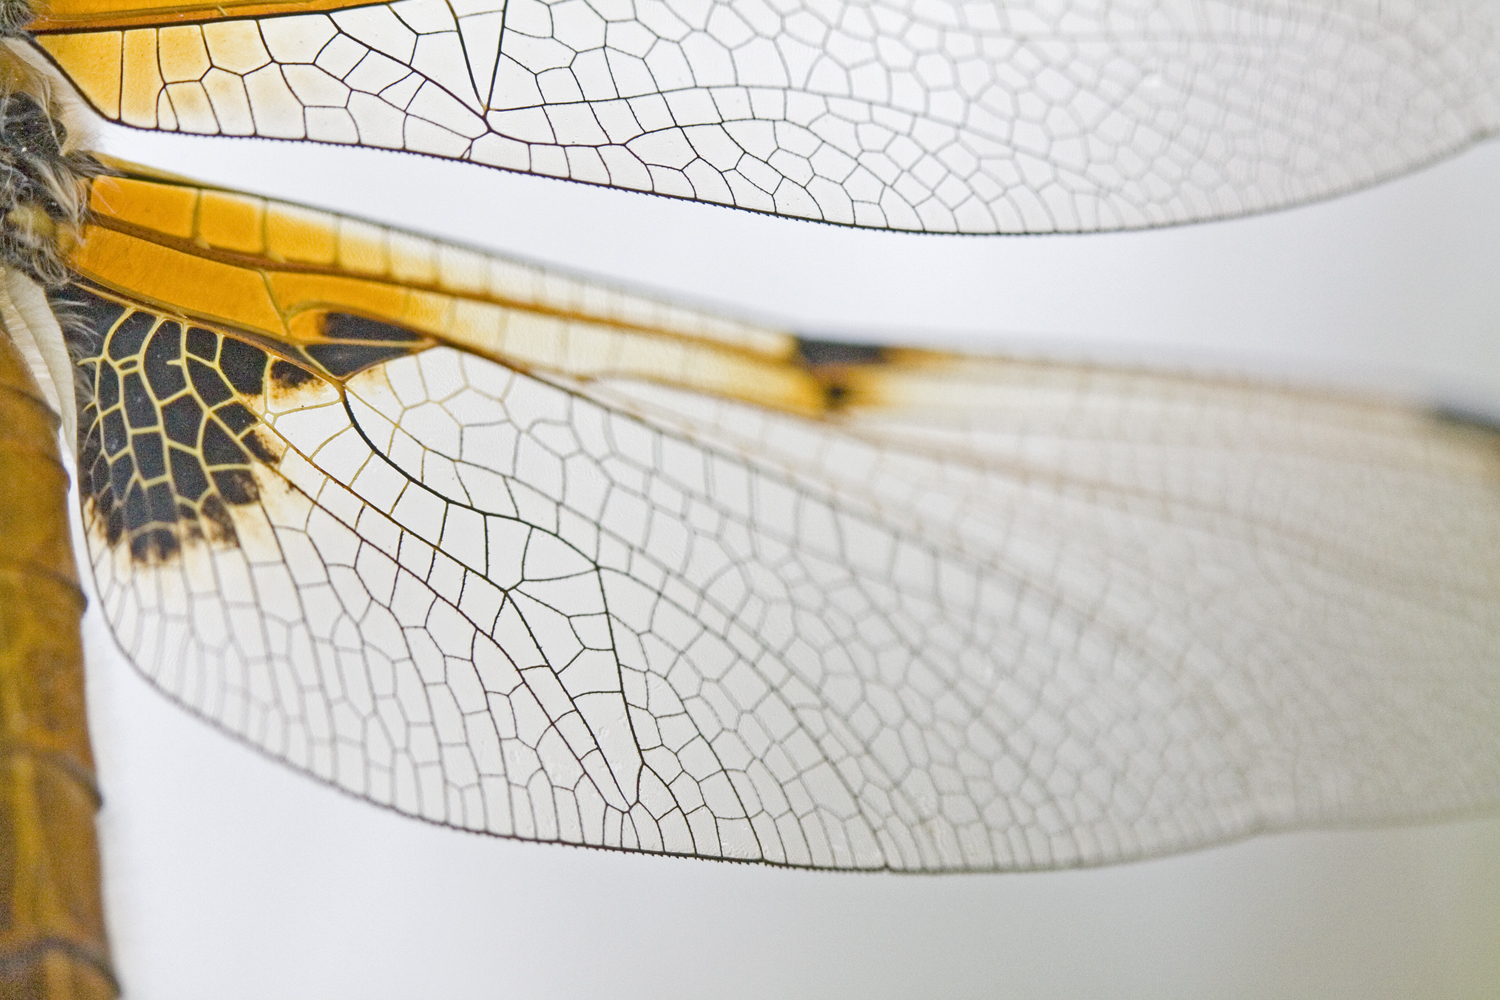 Wing of Four-spotted Chaser, Libellula quadrimaculata